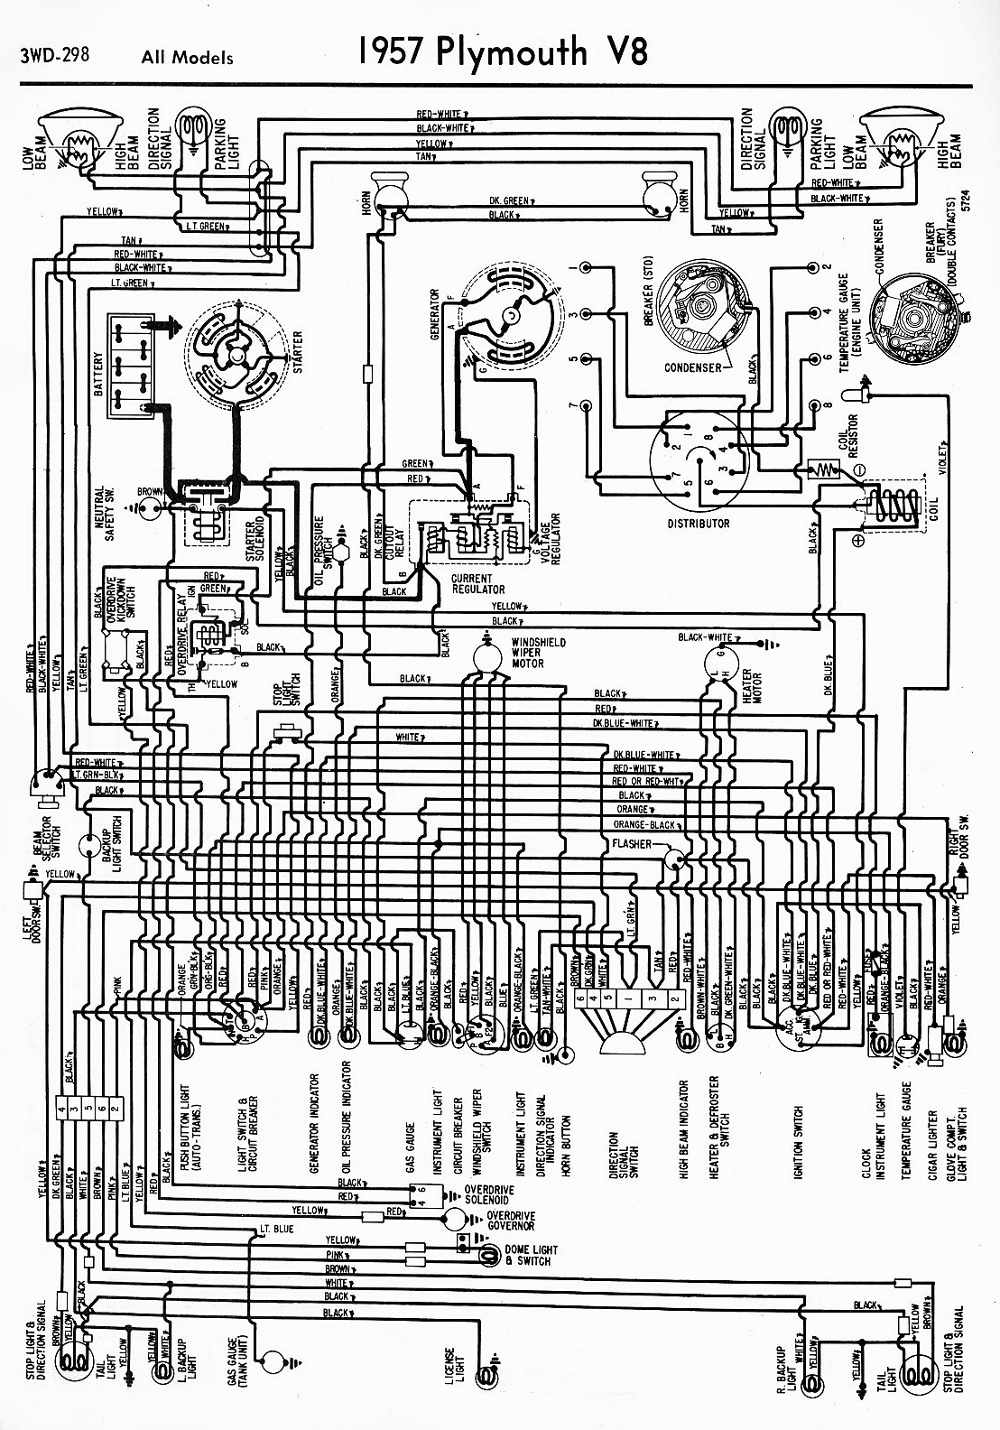 hight resolution of m1009 fuse box electrical schematic m1008 wiring diagram m1009 battery wiring